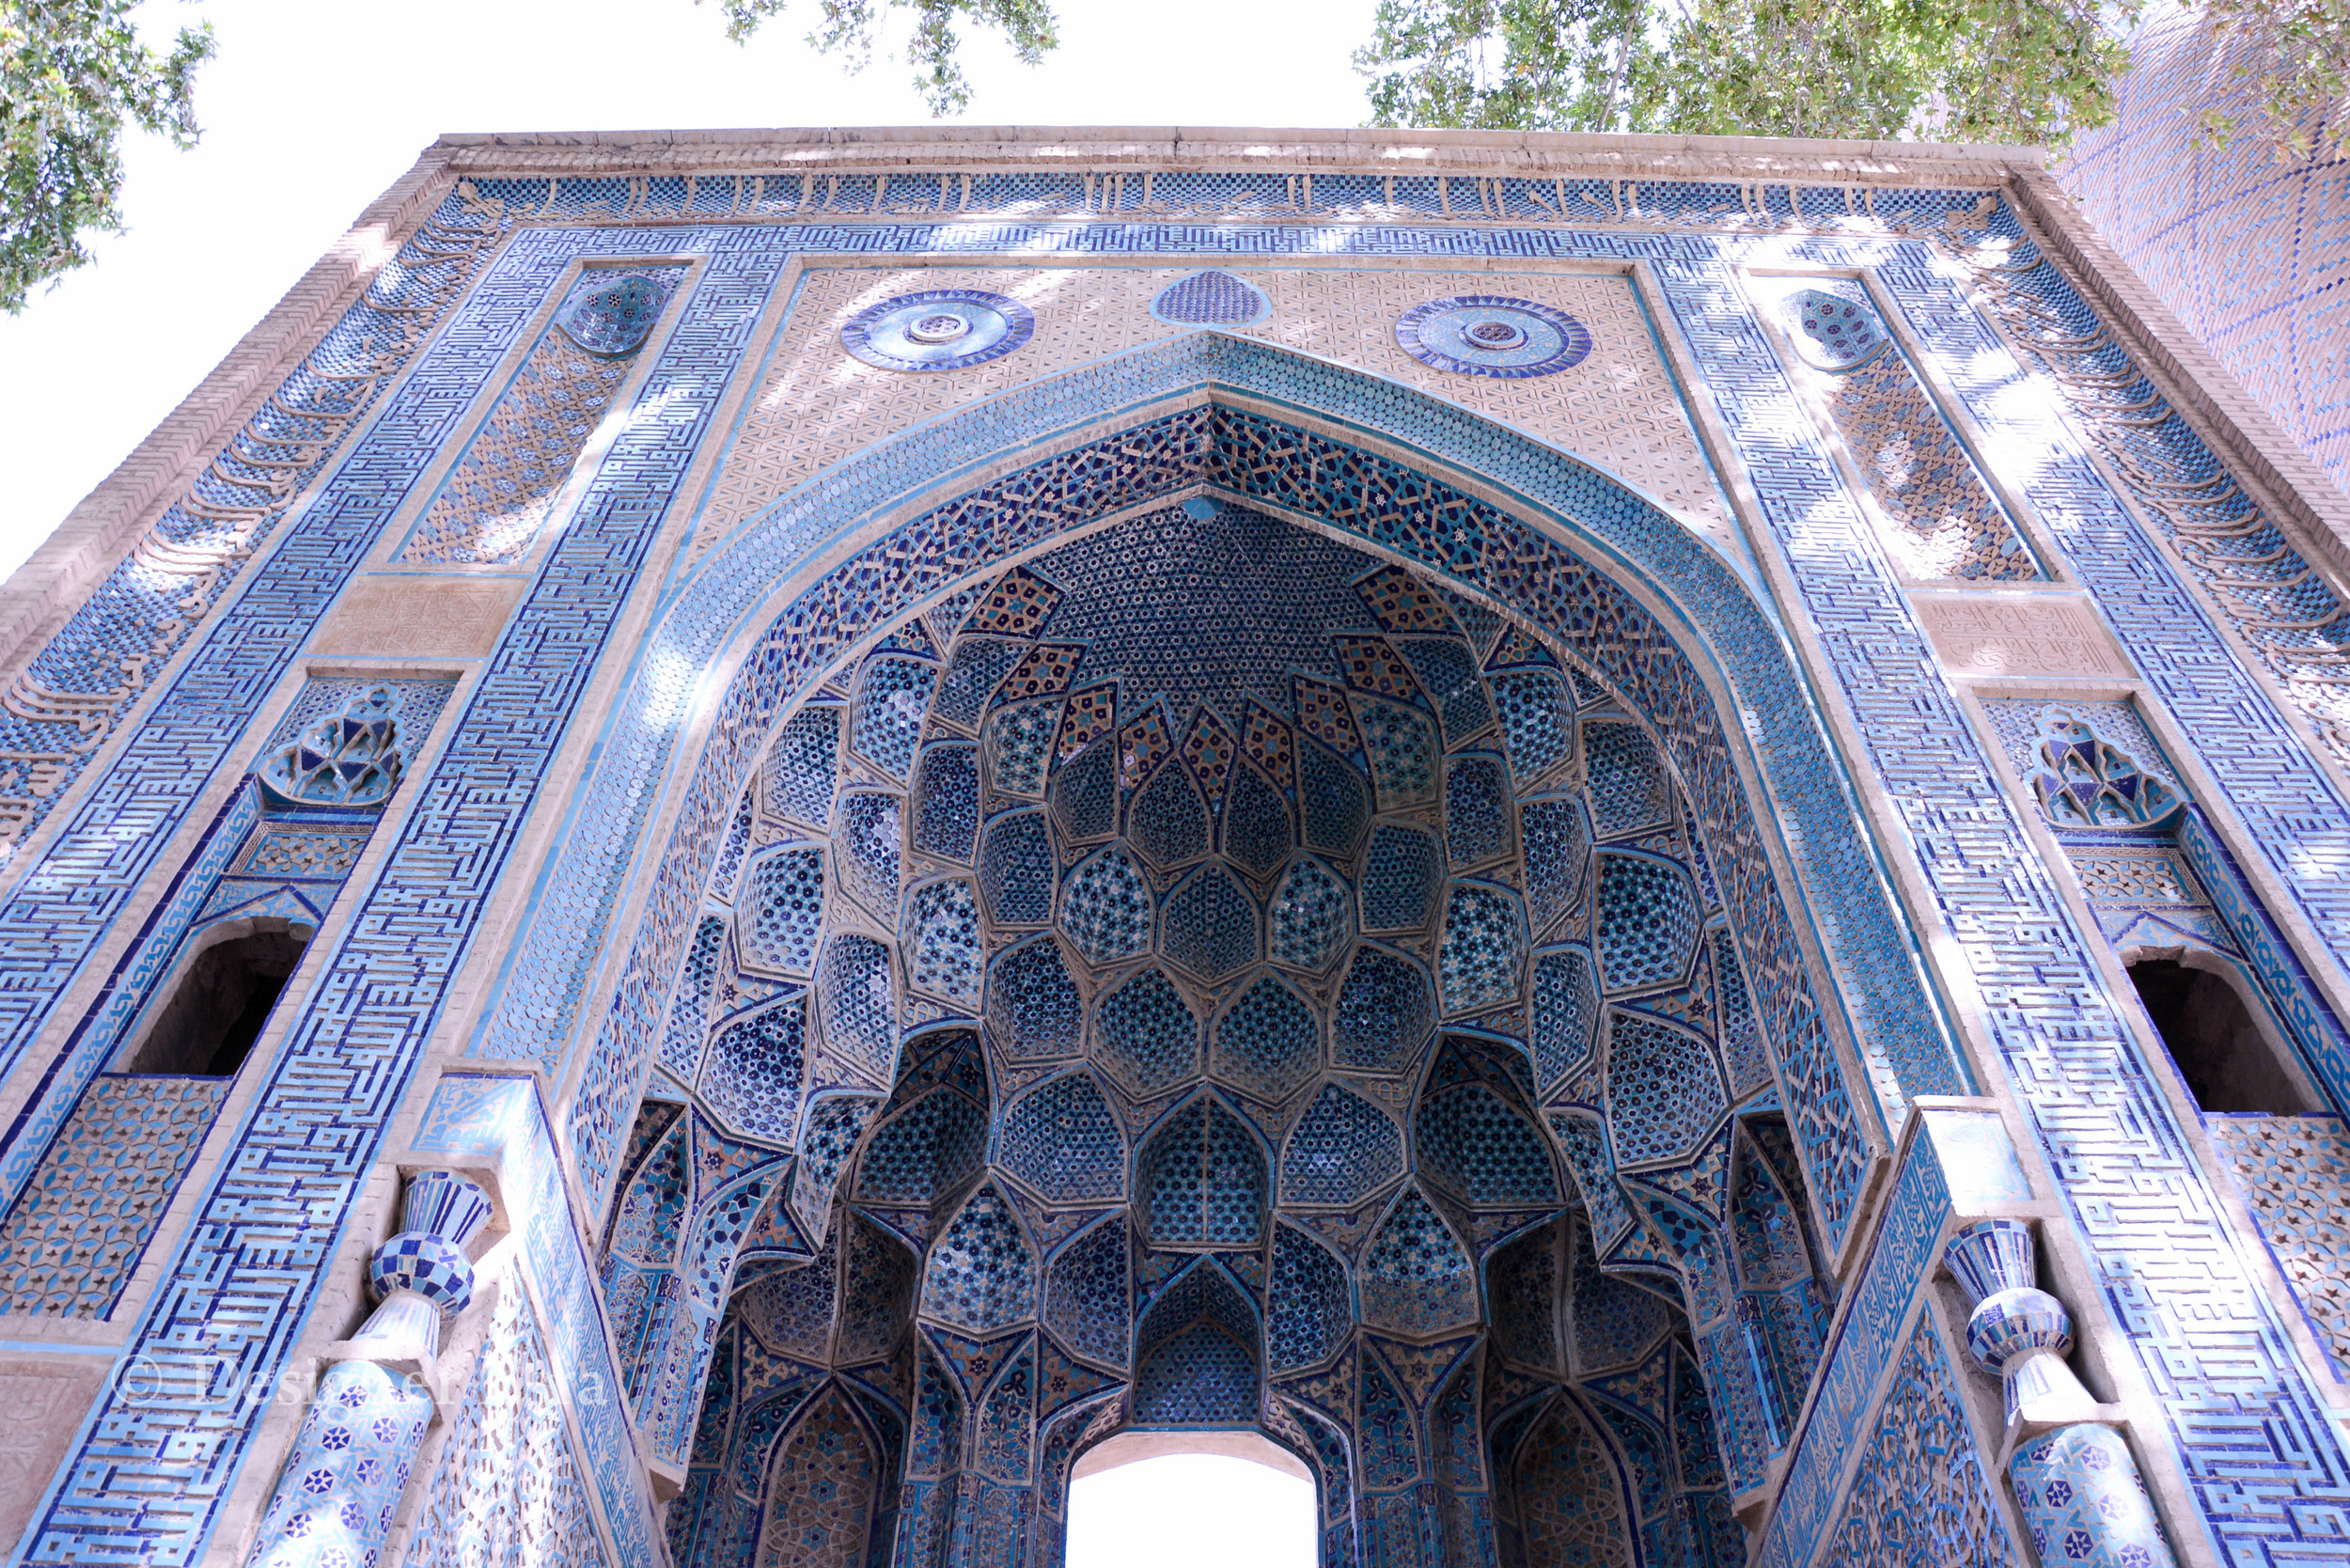 he façade is the only remains of an early fourteenth century khanaqah